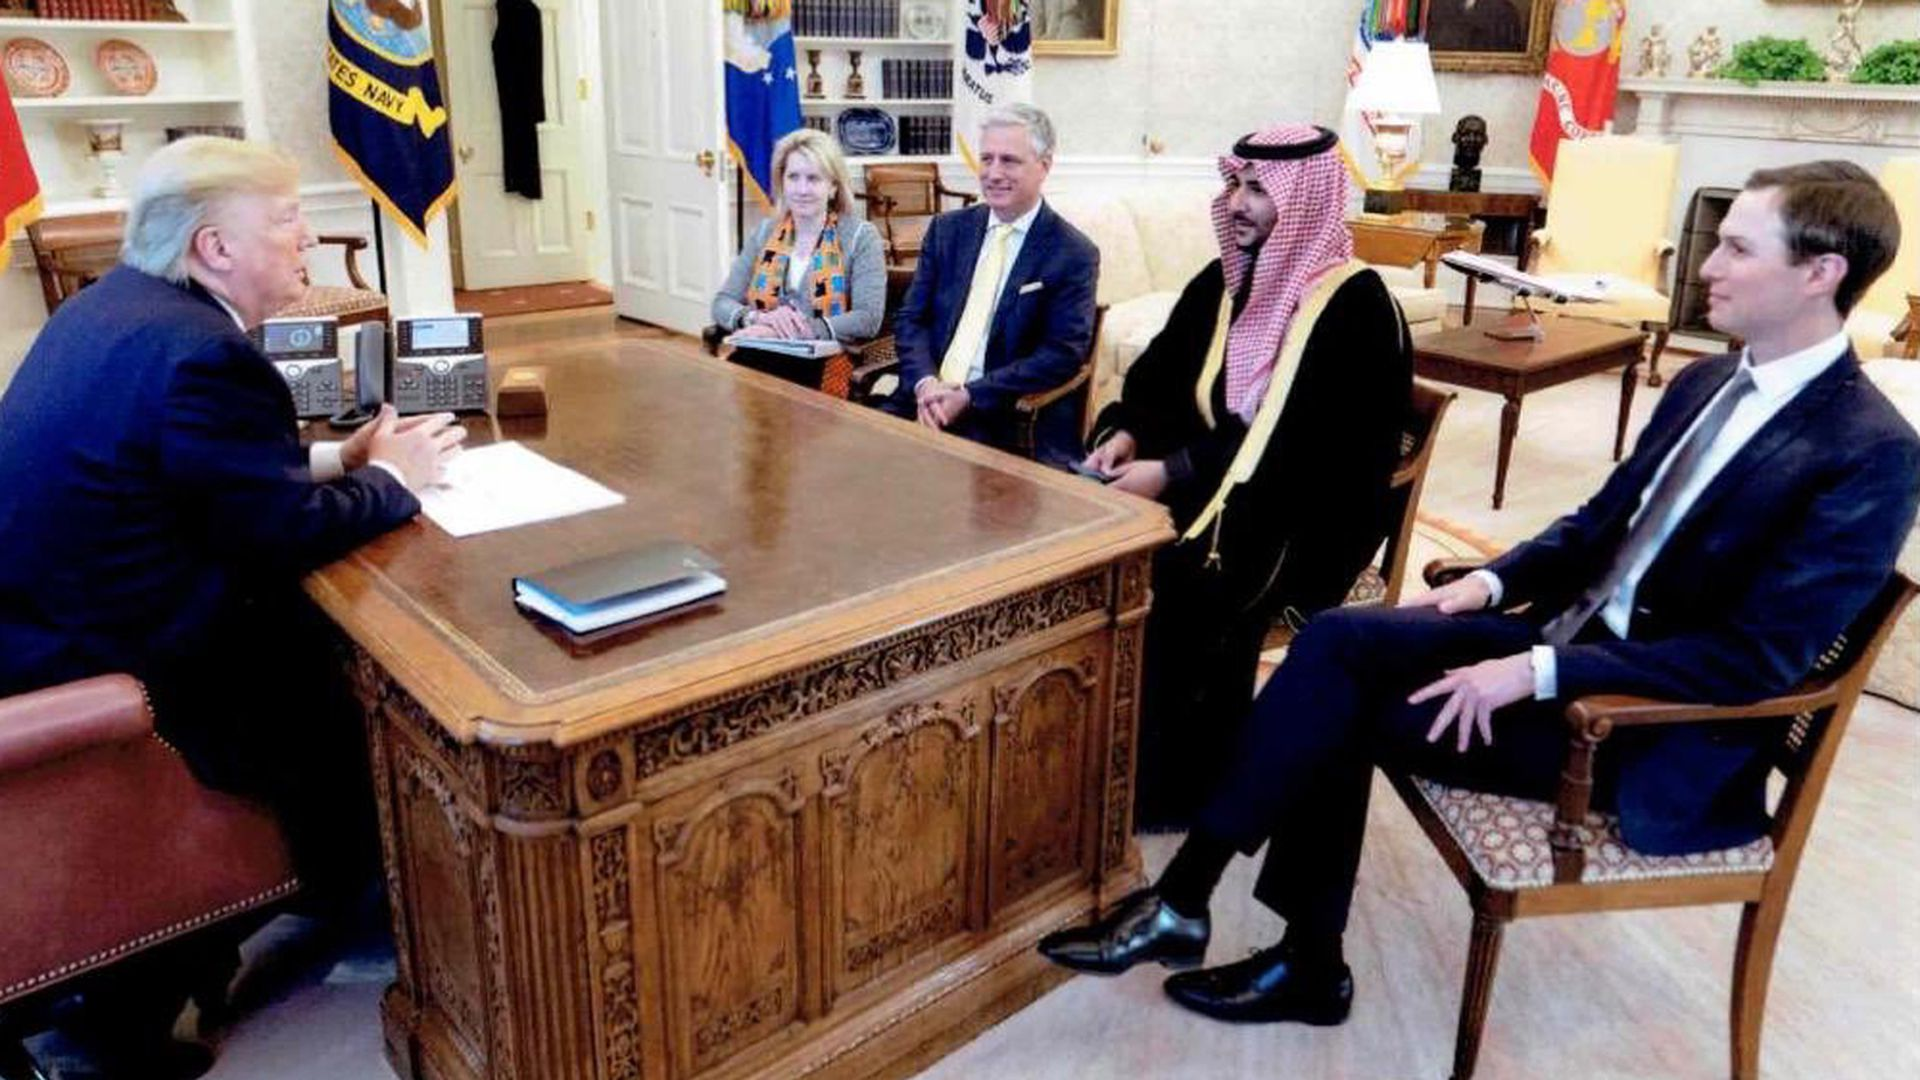 Saudi envoy met with Trump, shared message on Iran from crown prince